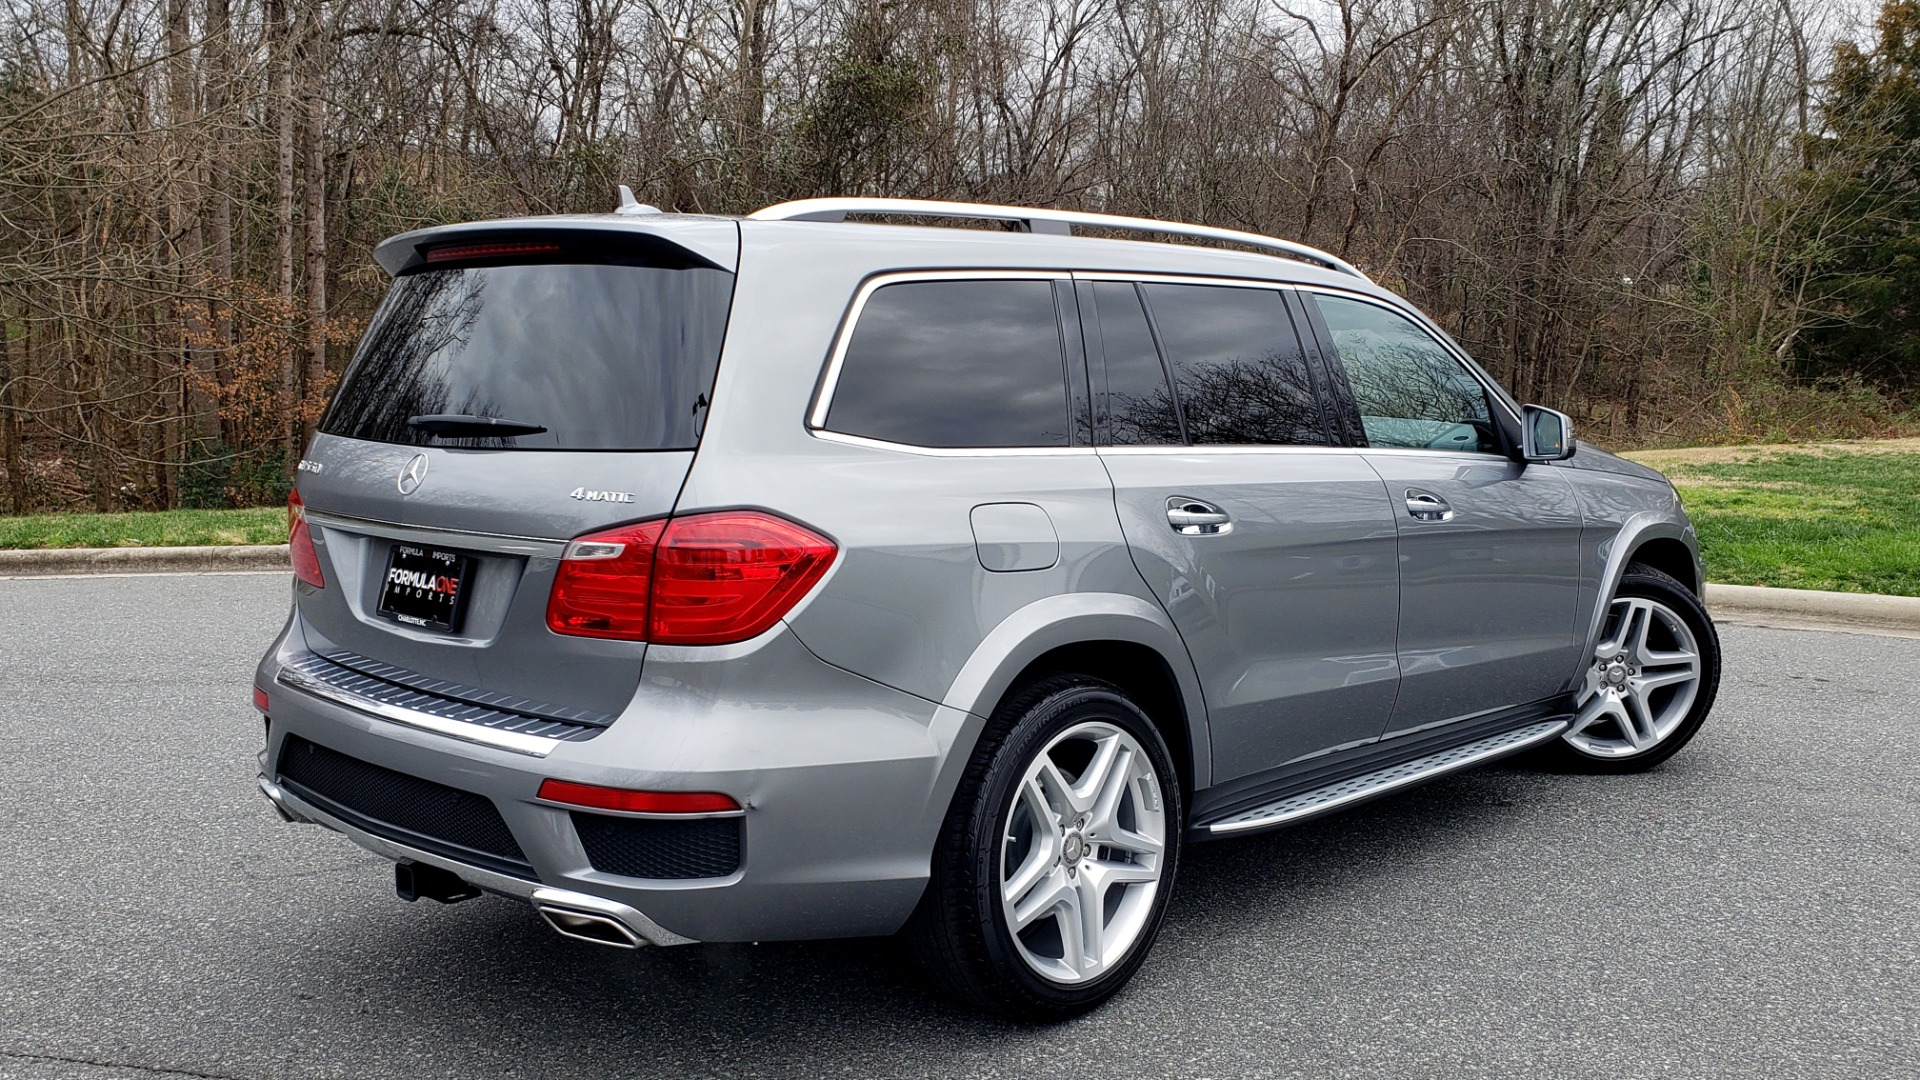 Used 2016 Mercedes-Benz GL 550 4MATIC / NAV / DRVR ASST / DUAL-ROOF / REARVIEW for sale Sold at Formula Imports in Charlotte NC 28227 6